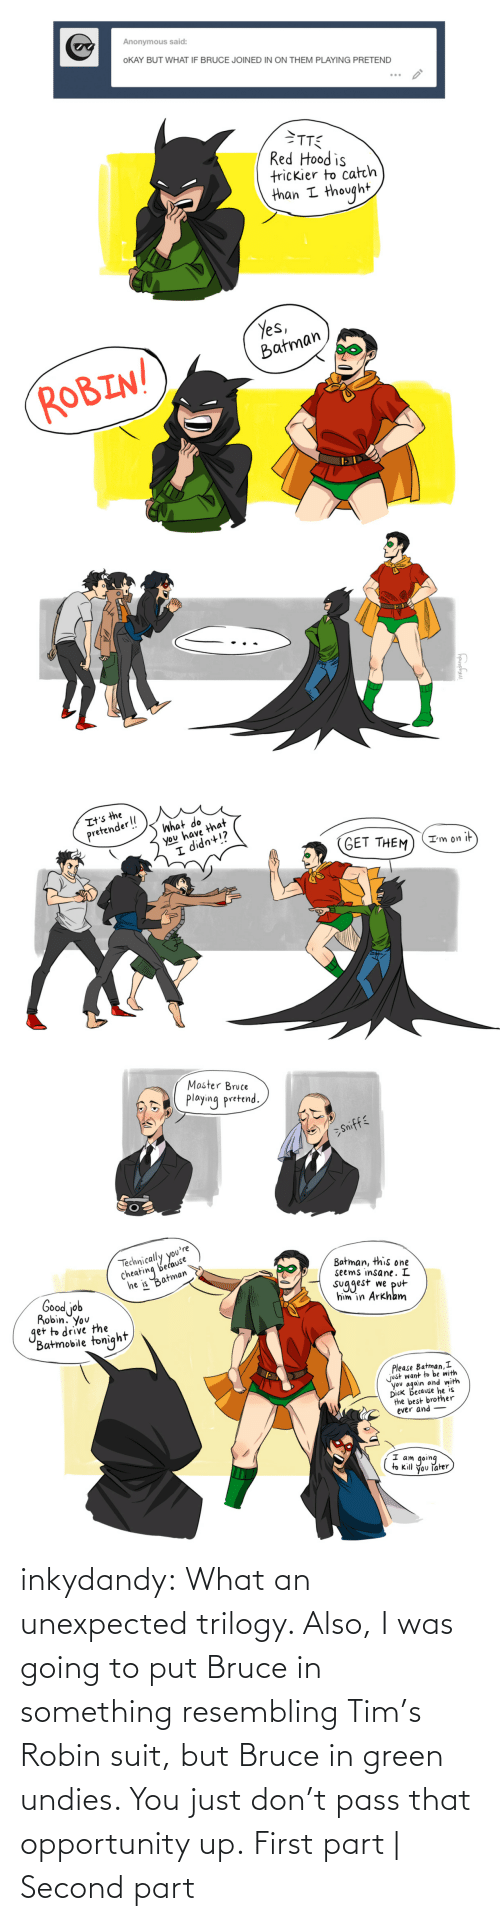 Thought: inkydandy: What an unexpected trilogy. Also, I was going to put Bruce in something resembling Tim's Robin suit, but Bruce in green undies. You just don't pass that opportunity up. First part | Second part